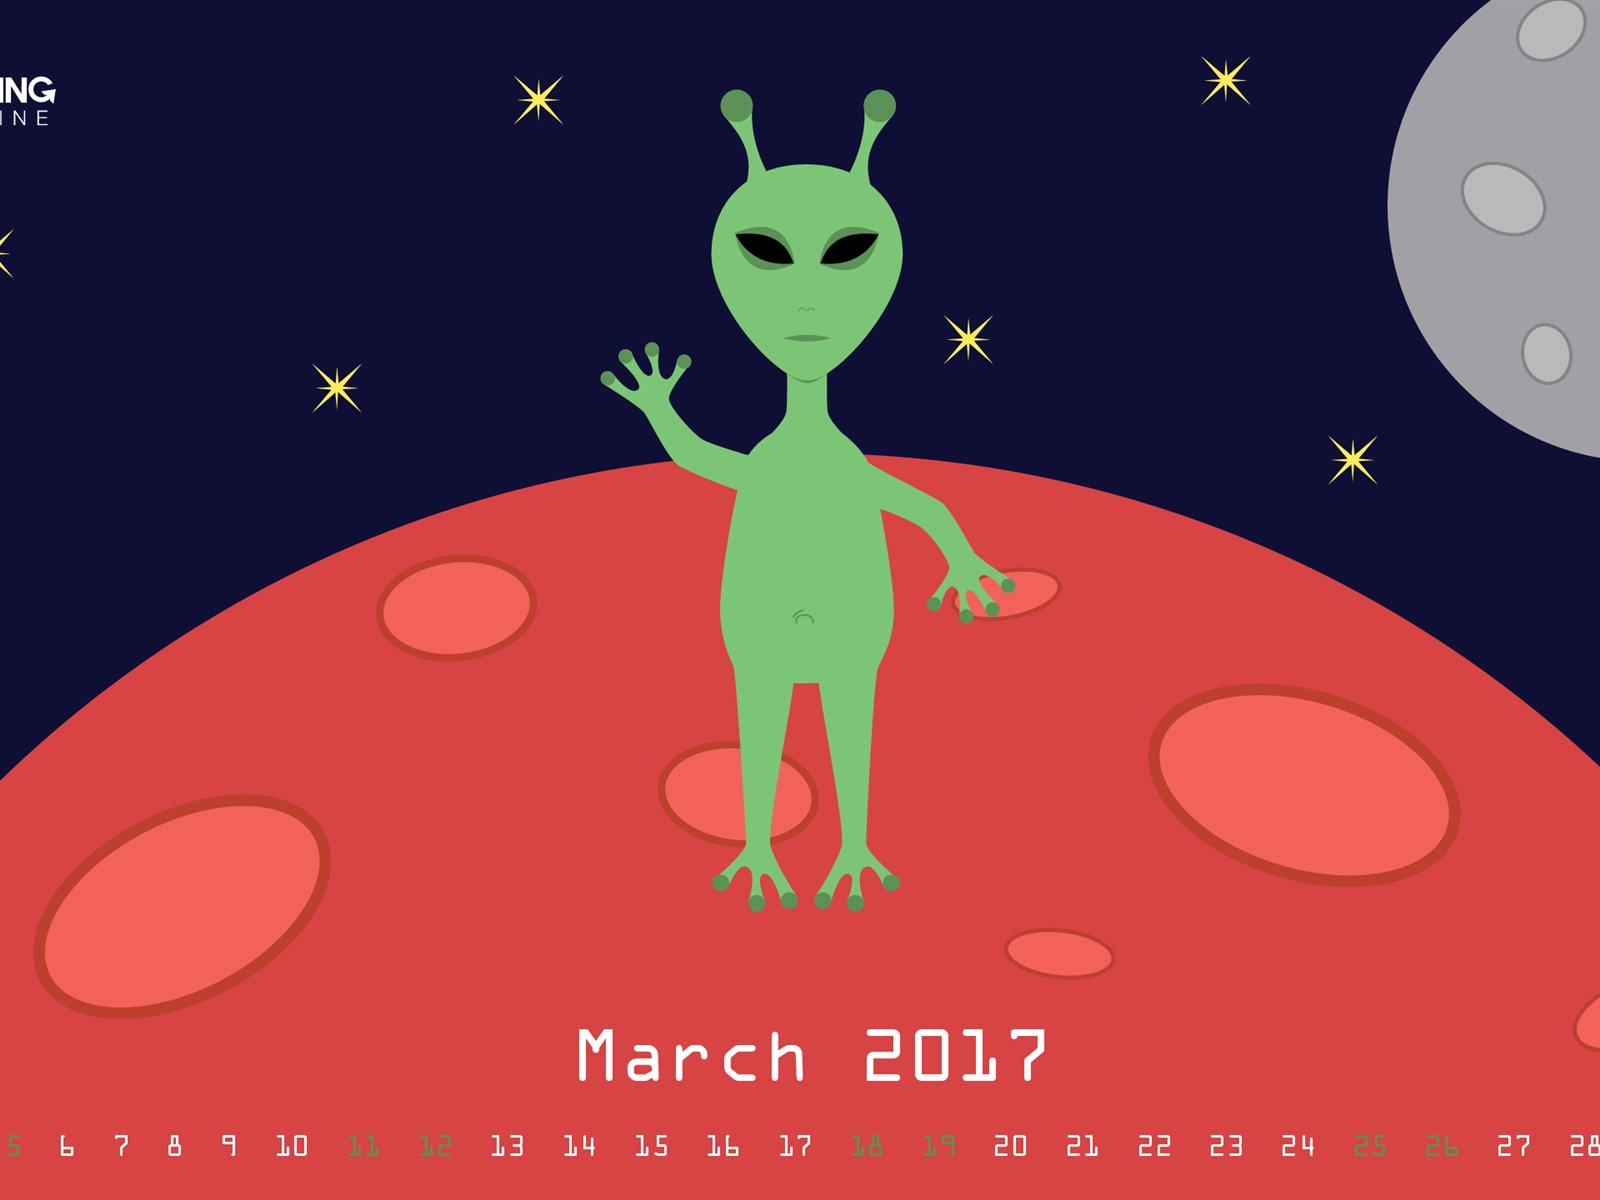 Life On Mars-March 2017 Calendar Wallpaper - 1600x1200 wallpaper download